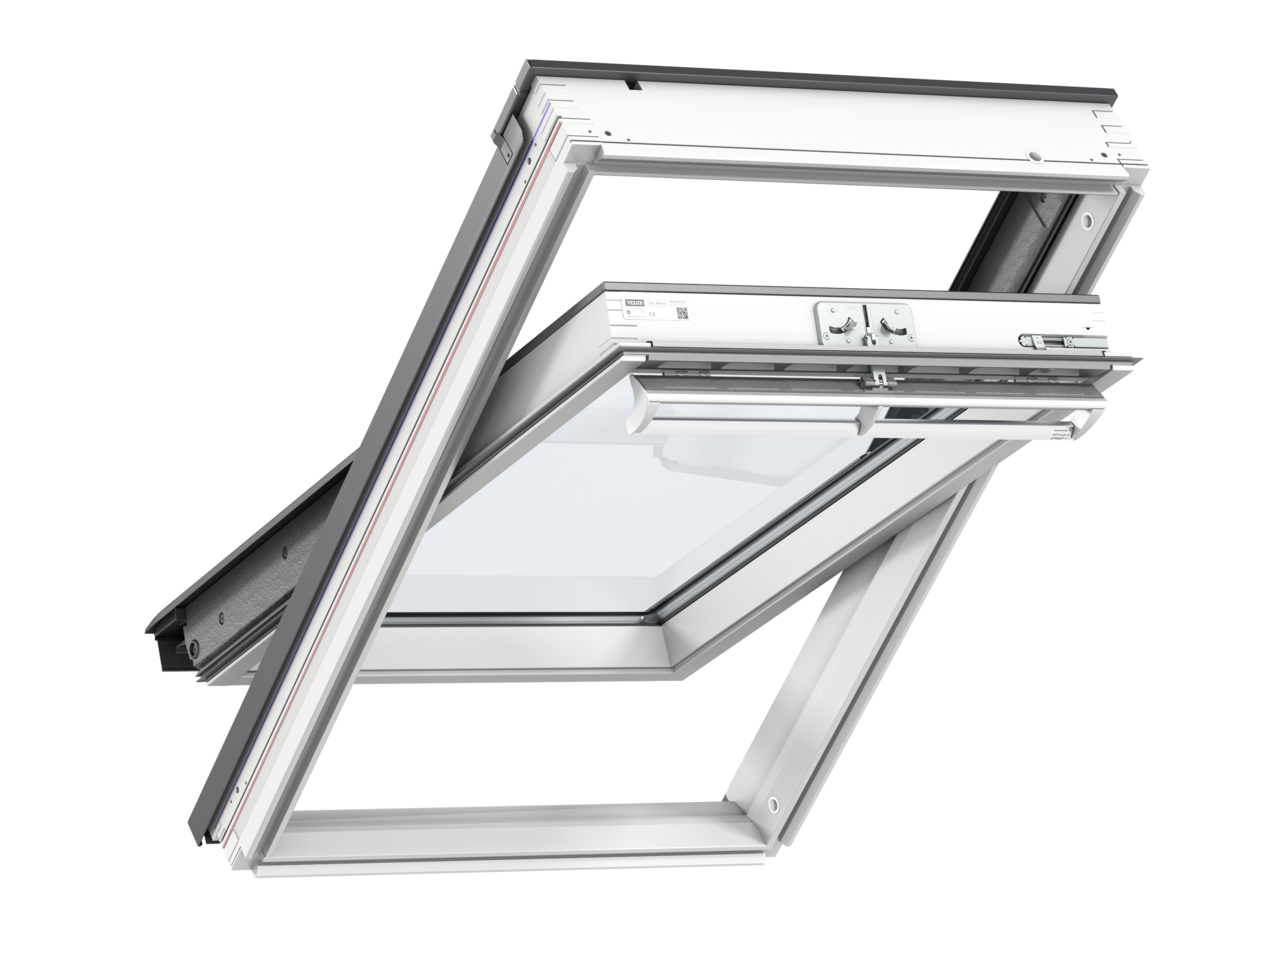 Velux GGL SK06 1140 x 1180mm Centre Pivot Standard 70Pane Roof Window - White Painted